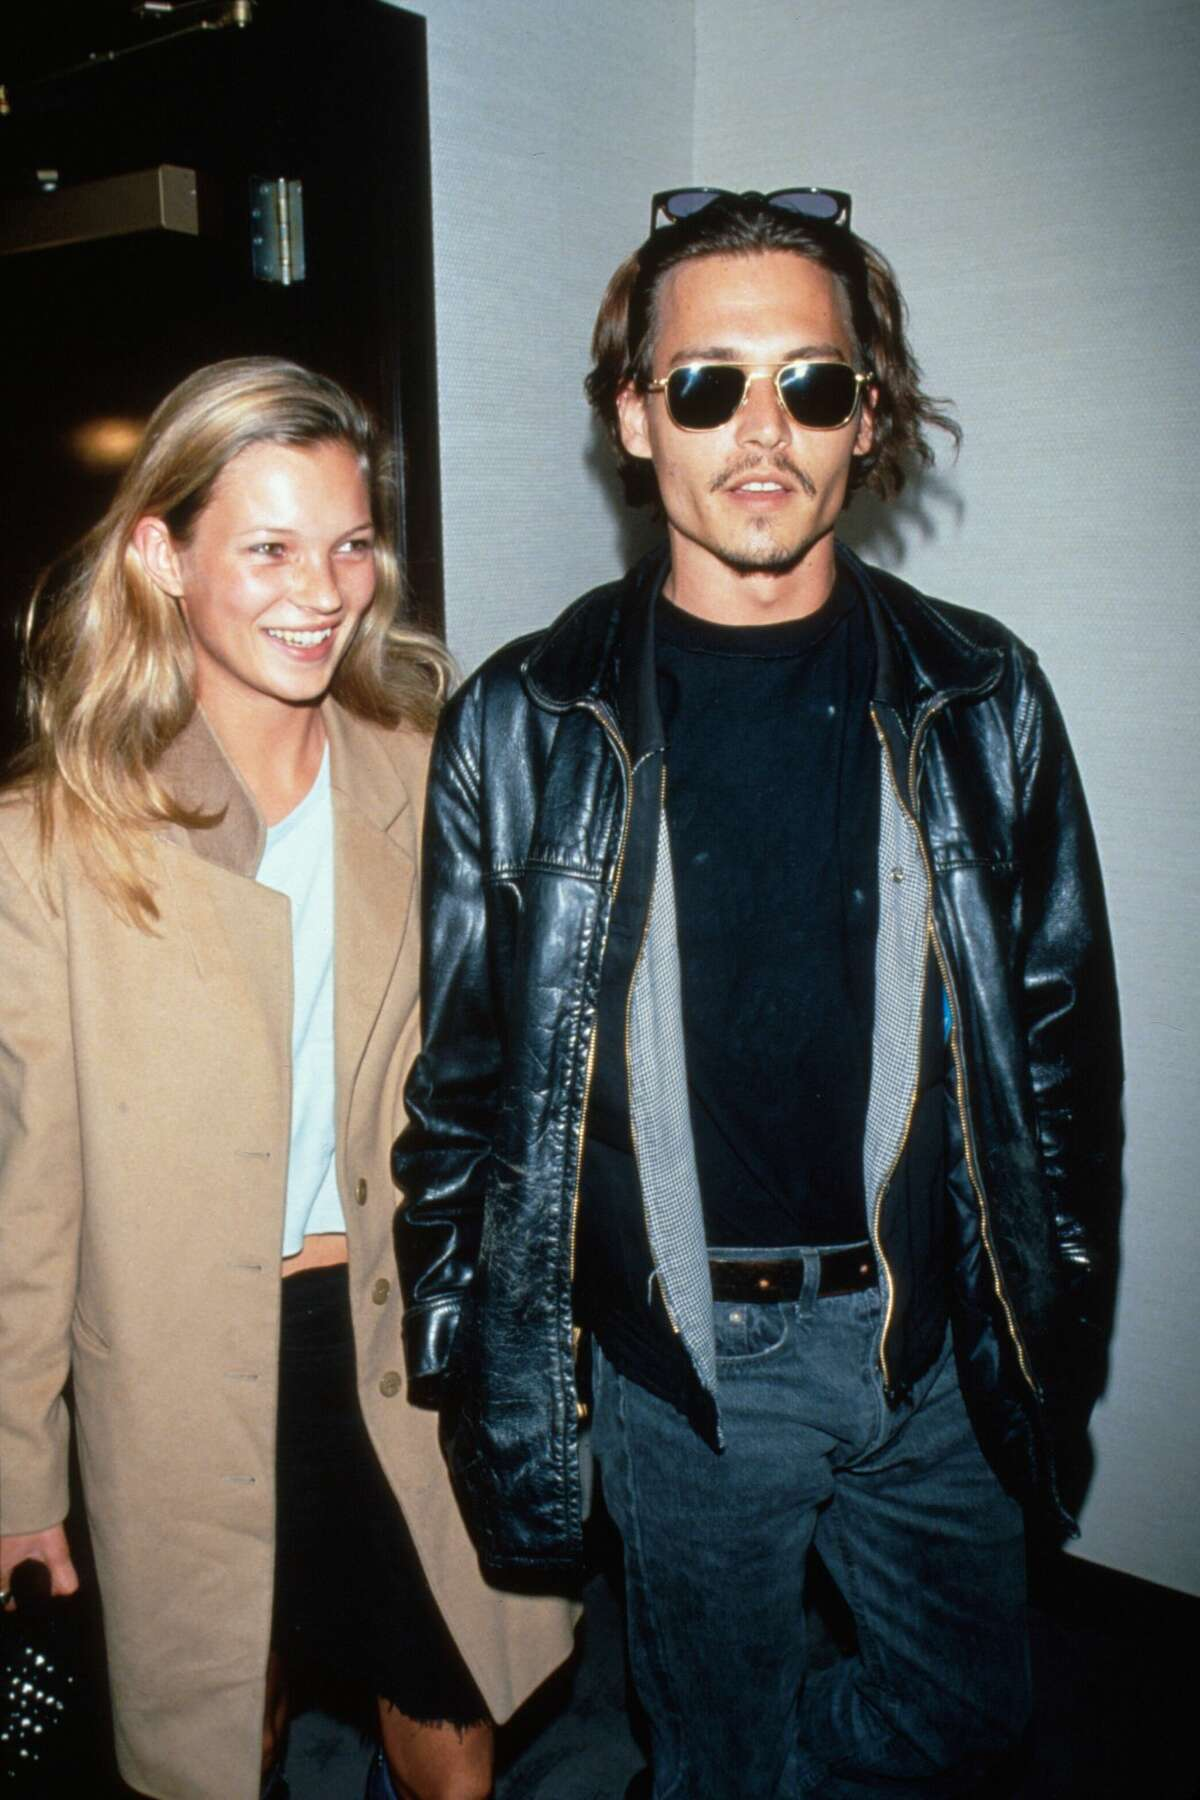 Actor Johnny Depp and model Kate Moss dated from 1994 to 1998.